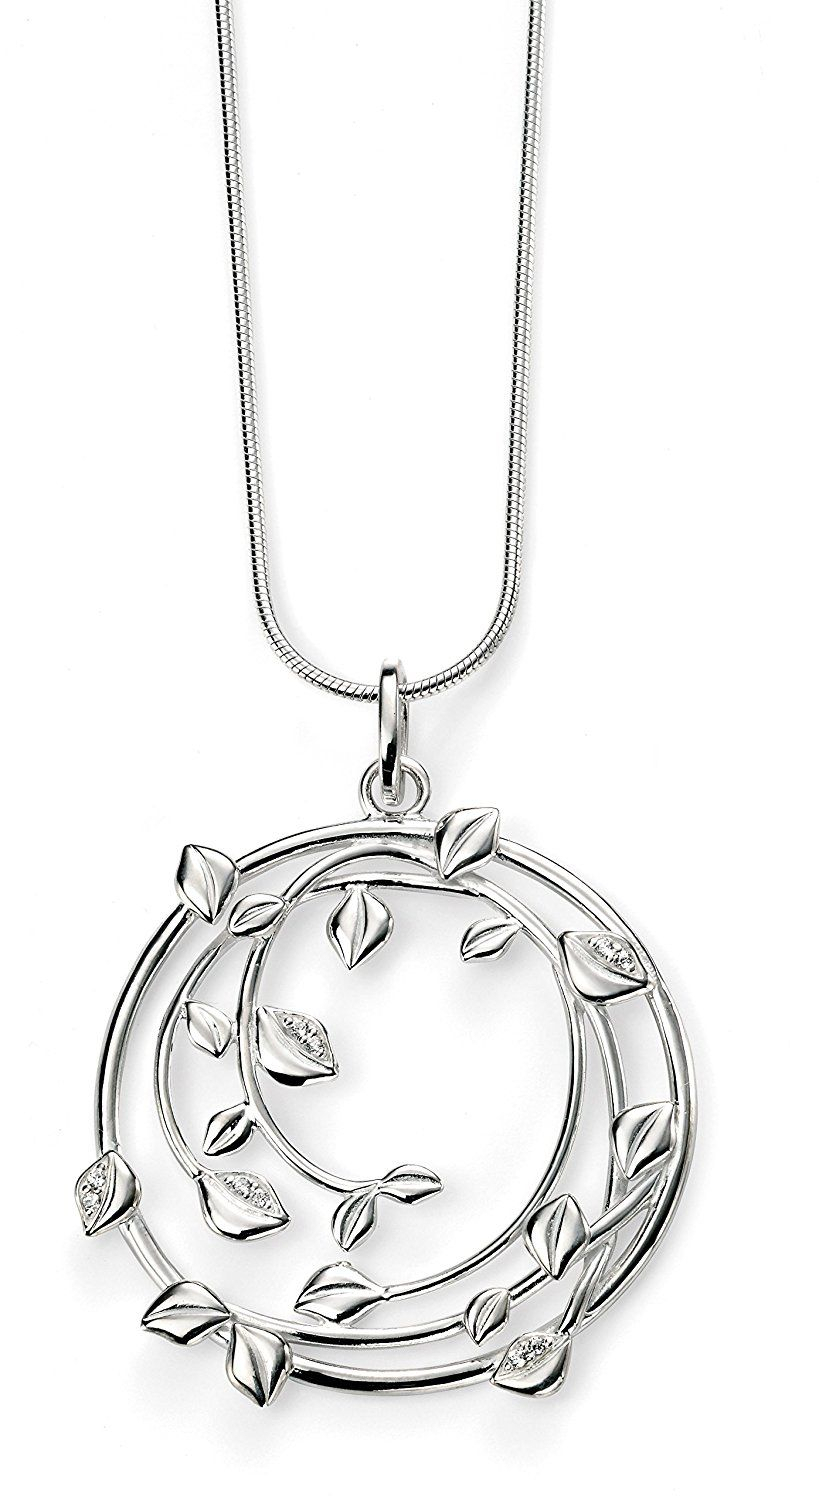 Elements Sterling Silver Ladies Large Swirl Pendant With Pave Clear Intended For Most Recently Released Pavé Locket Element Necklaces (Gallery 8 of 25)